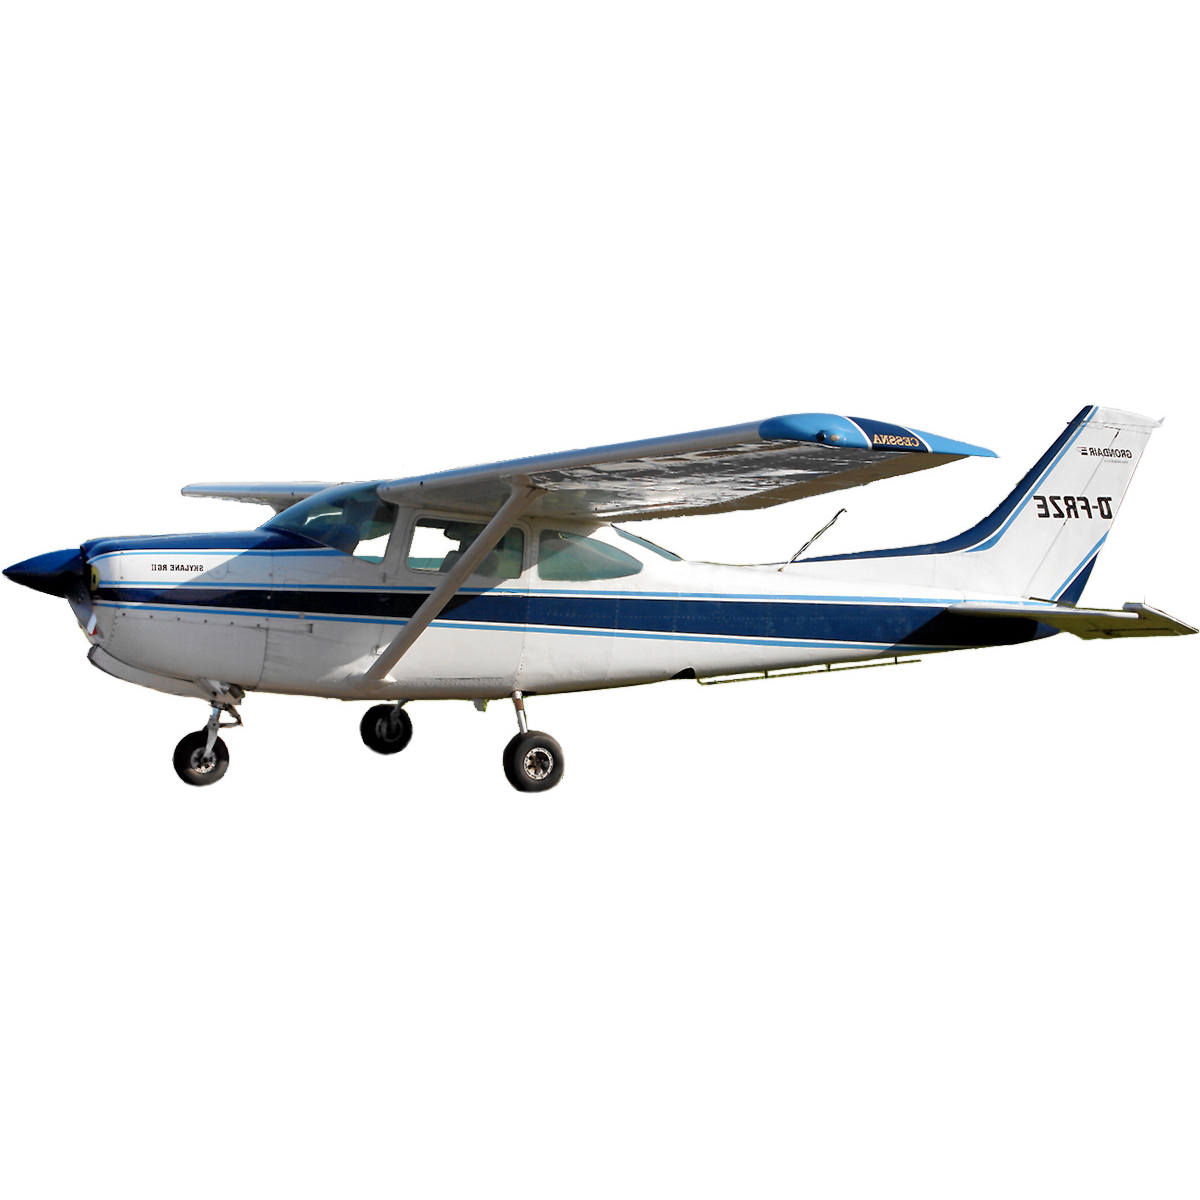 FileWRM Airplane   Flugzeug Cessna 172 mjpg   Wikimedia Commons 1200x1200